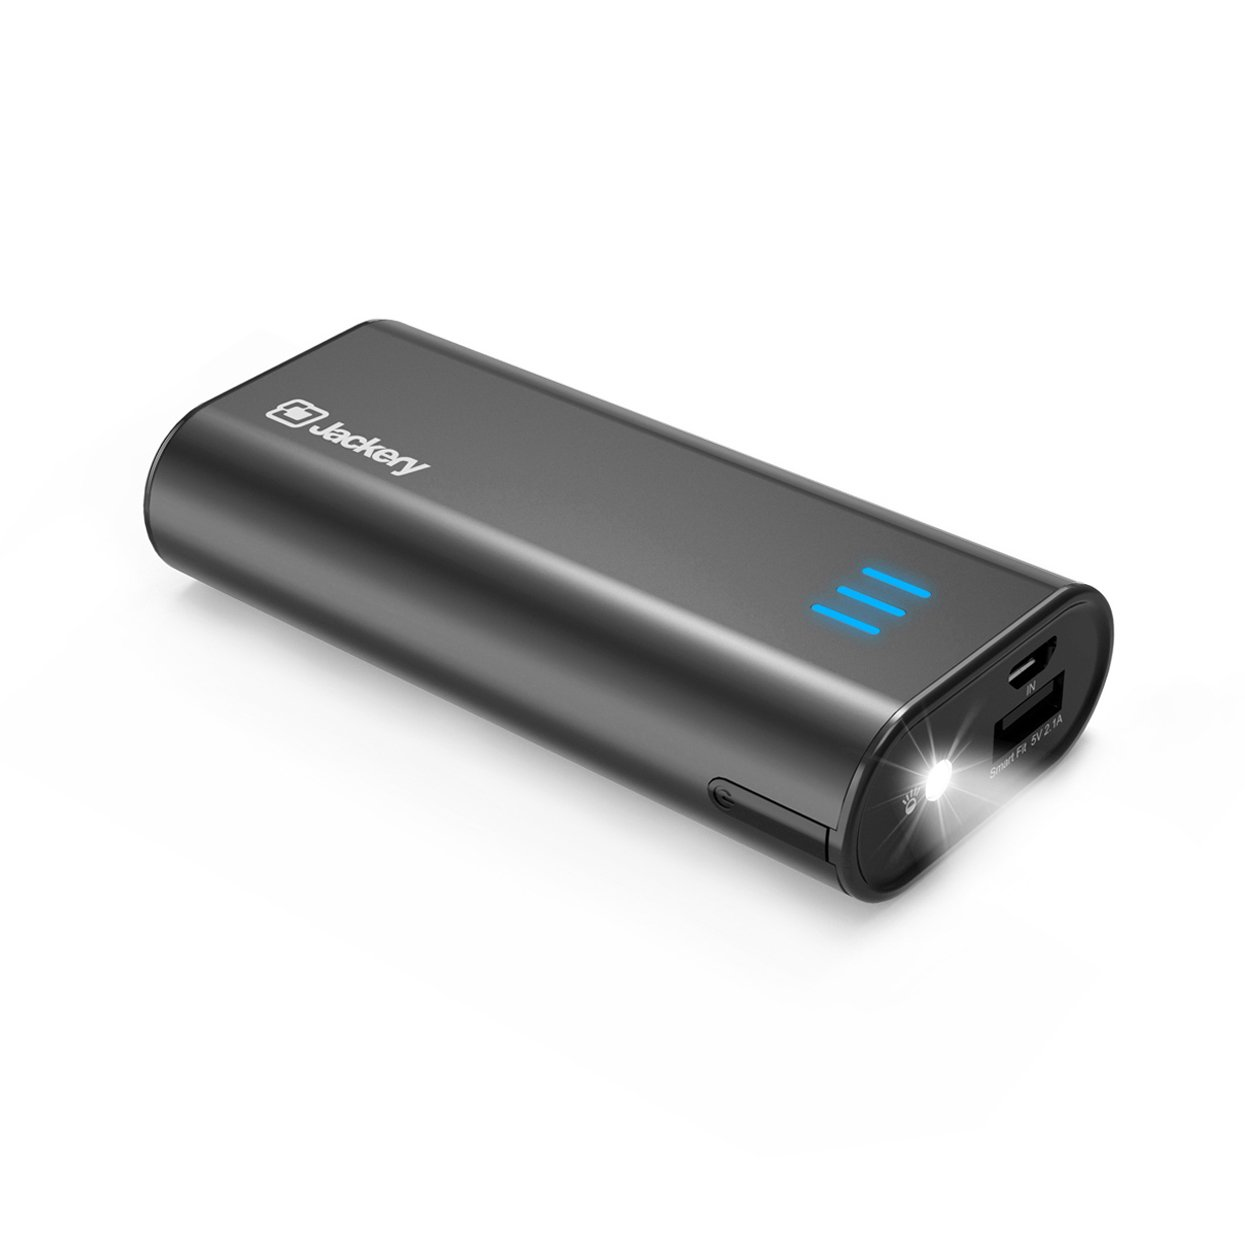 Jackery Portable Charger Bar 6000mAh Pocket-Sized External Battery Pack Fast Charger Power Bank with Emergency LED Flashlight for iPhone, Samsung and Other Devices - Black by Jackery